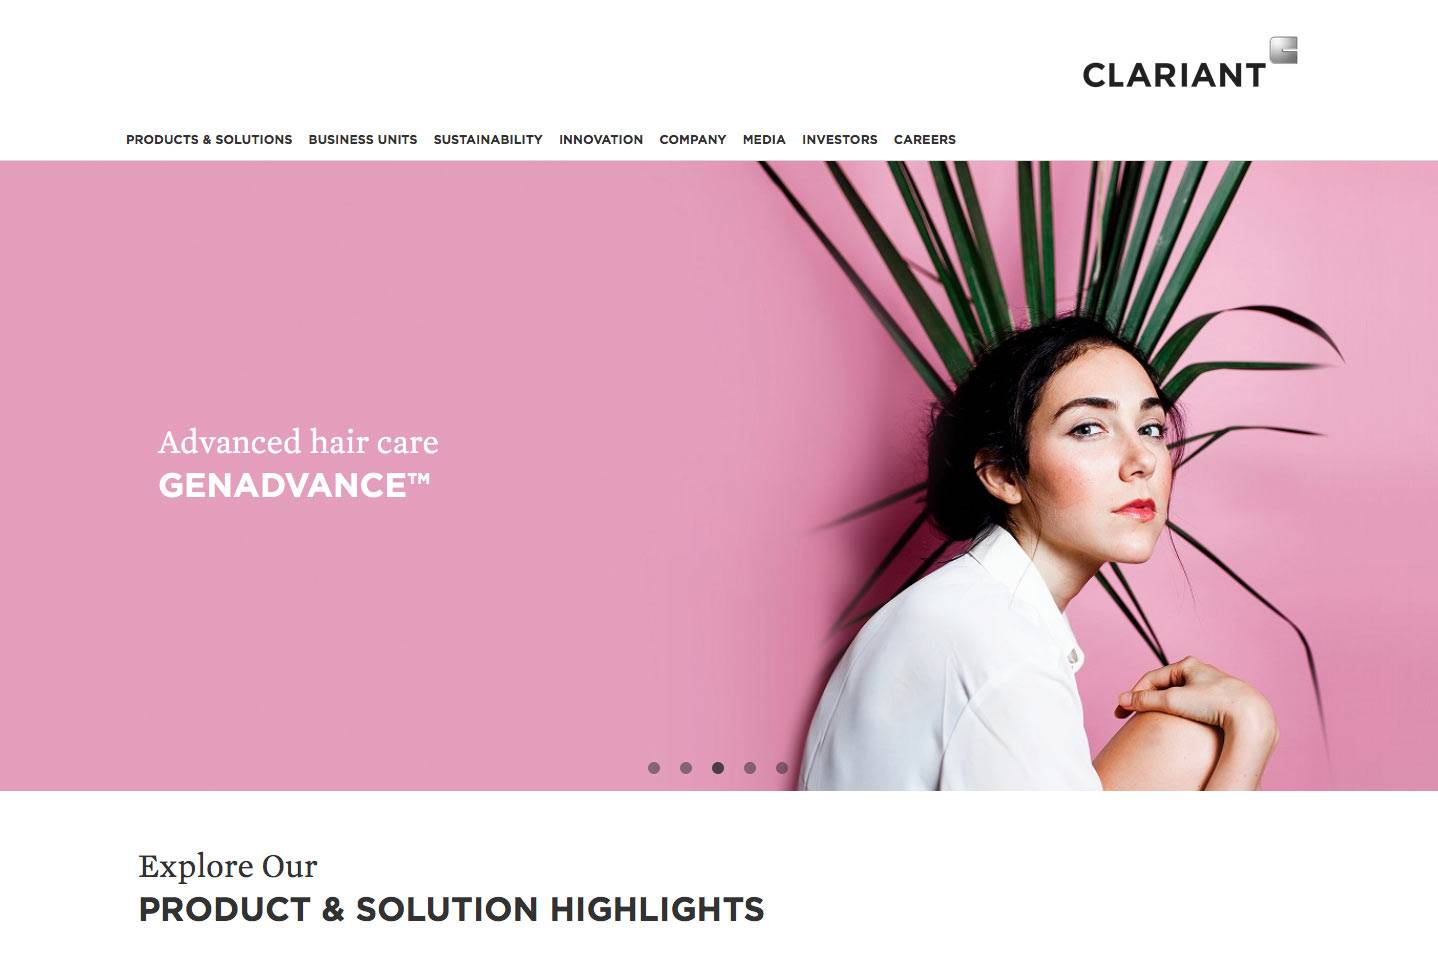 clariant-banner